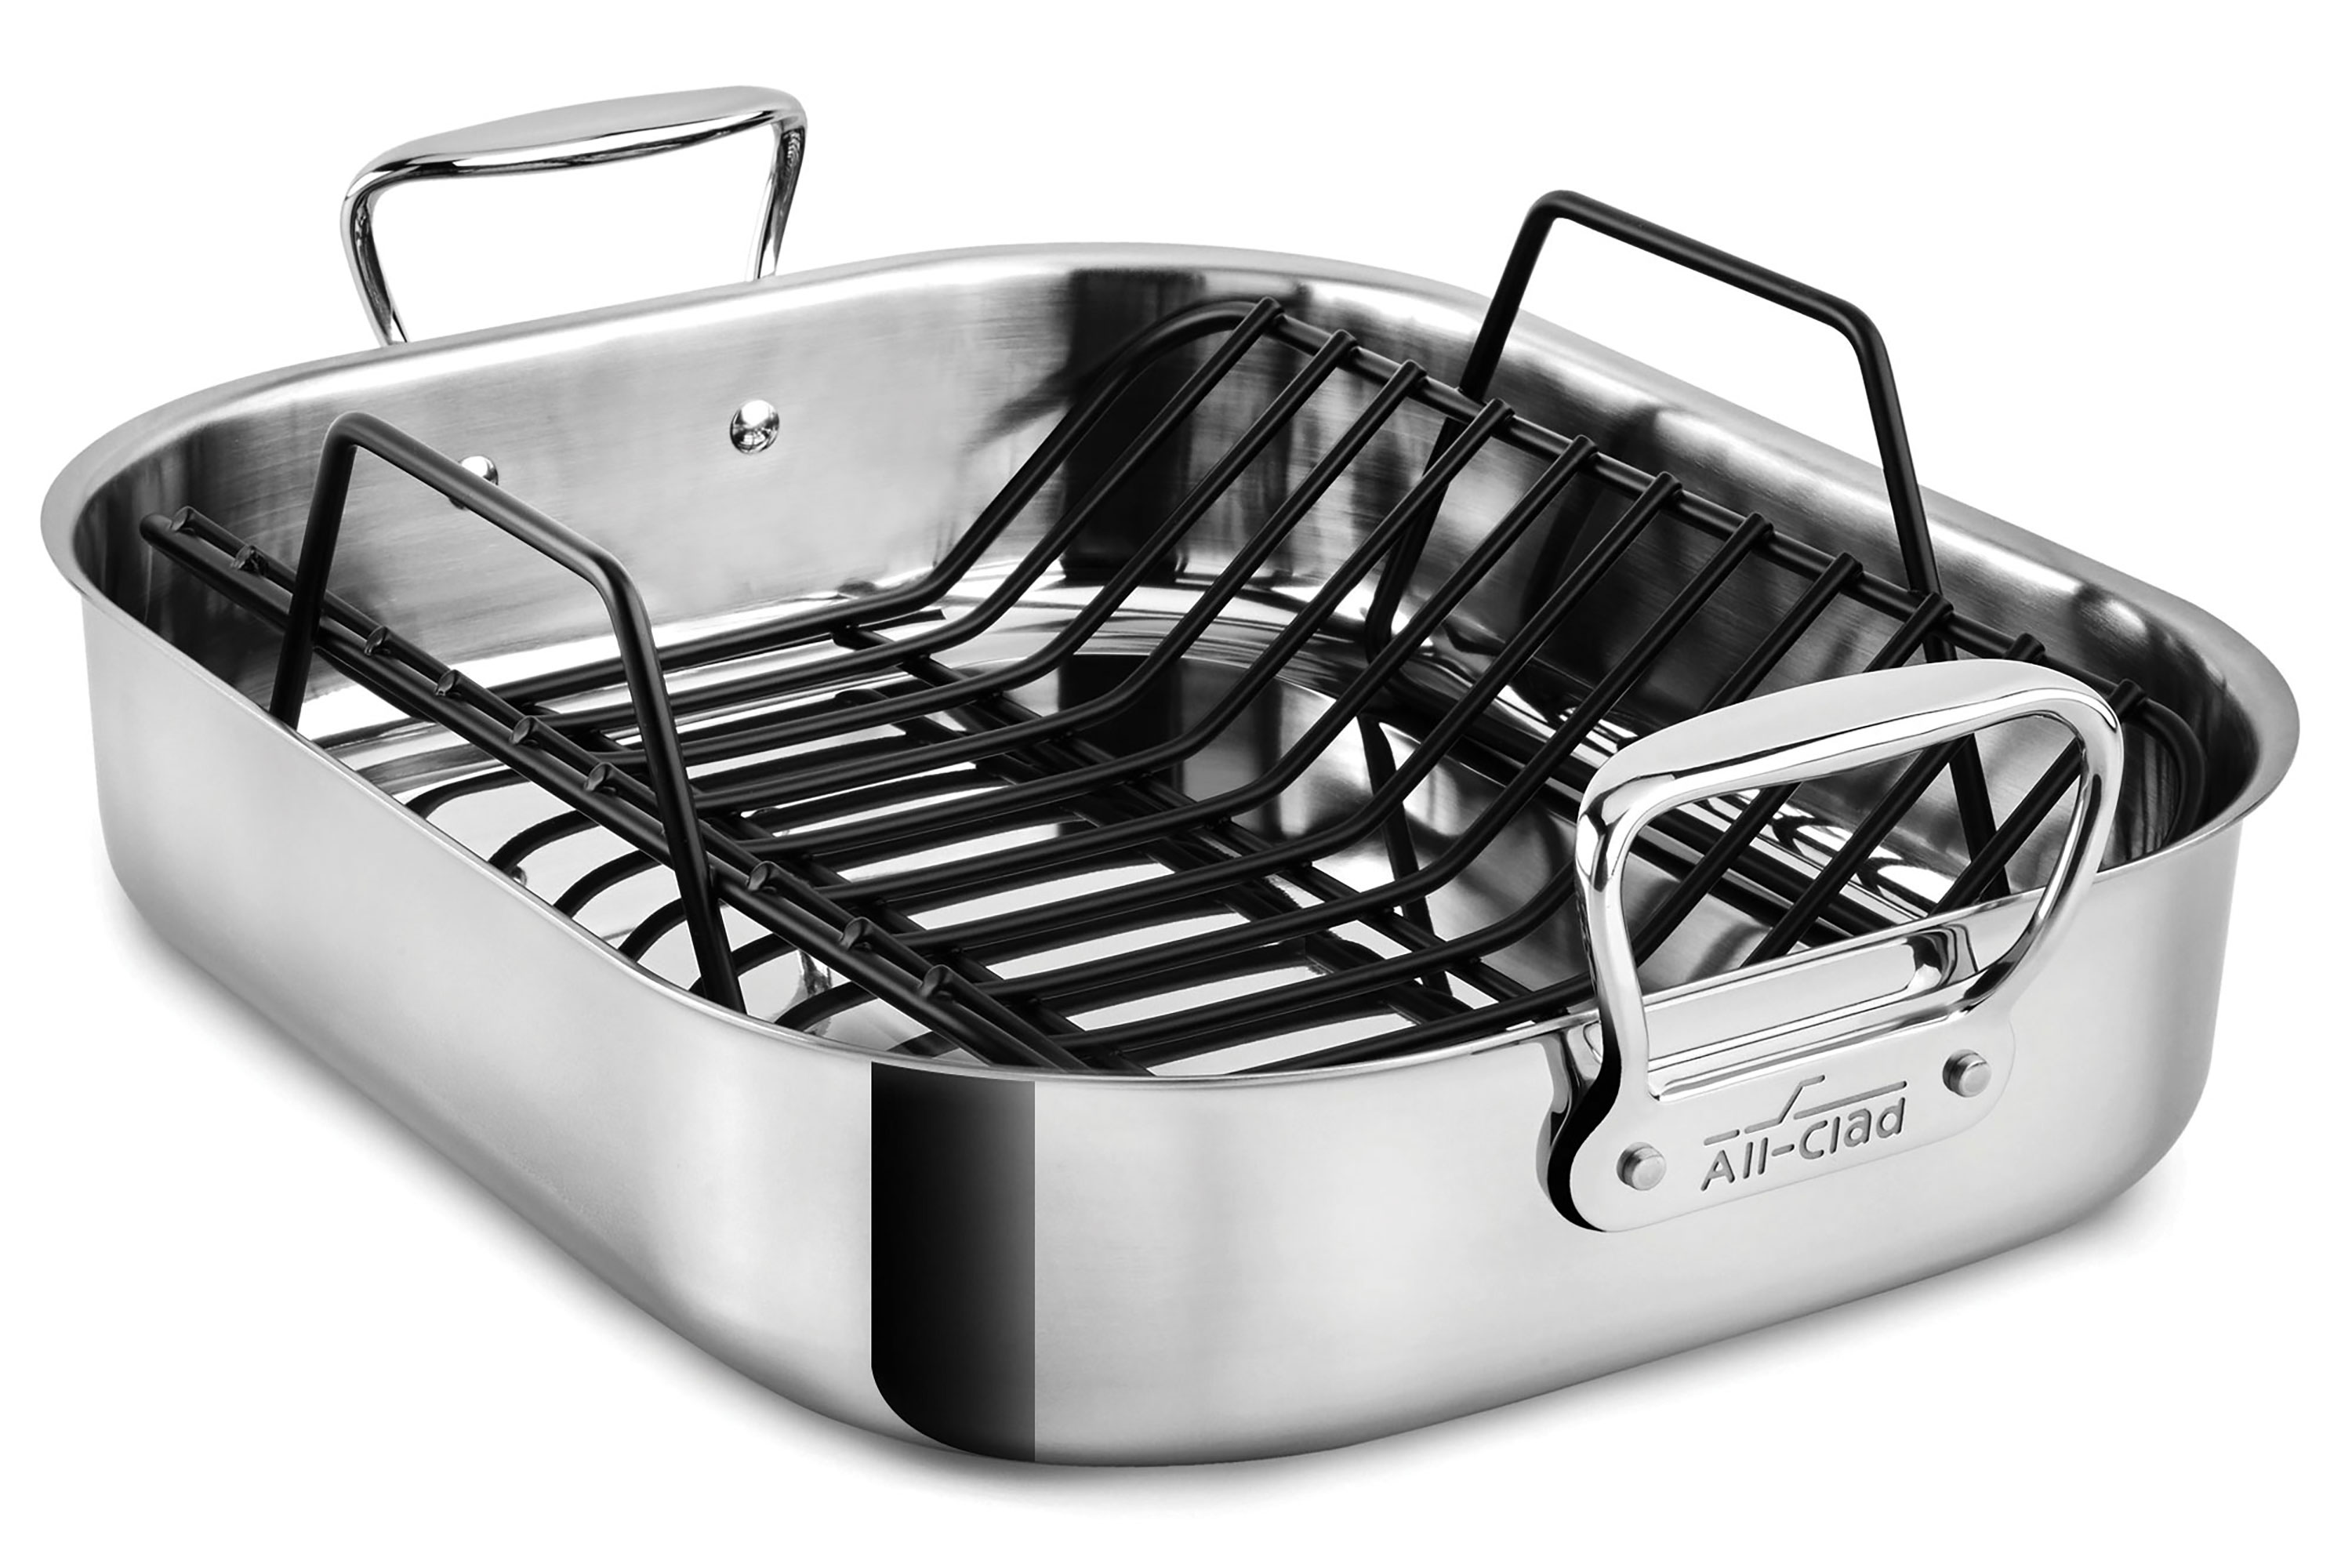 all clad roasting pan stainless steel large 16x13 inch turkey roaster cutlery and more. Black Bedroom Furniture Sets. Home Design Ideas